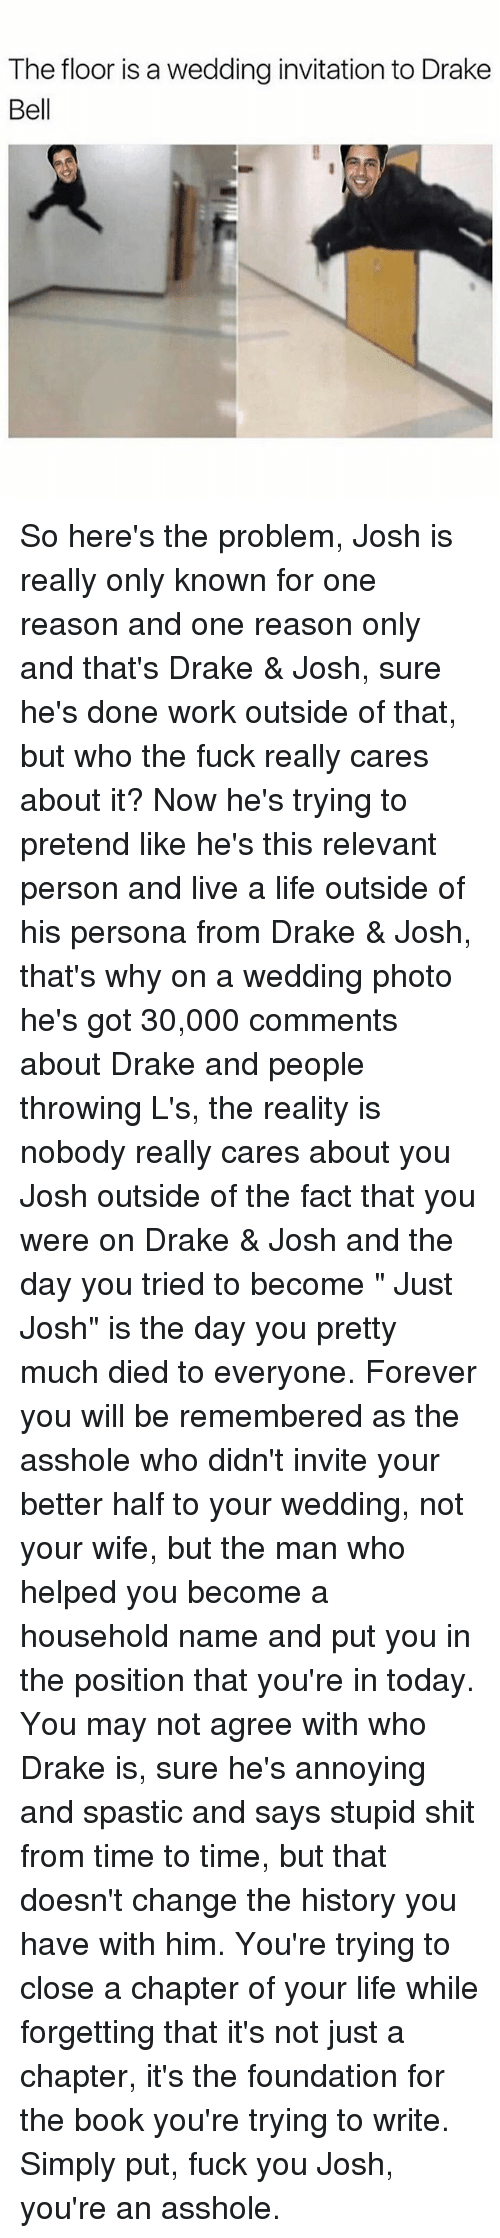 "Drake Bell: The floor is a wedding invitation to Drake  Bell So here's the problem, Josh is really only known for one reason and one reason only and that's Drake & Josh, sure he's done work outside of that, but who the fuck really cares about it? Now he's trying to pretend like he's this relevant person and live a life outside of his persona from Drake & Josh, that's why on a wedding photo he's got 30,000 comments about Drake and people throwing L's, the reality is nobody really cares about you Josh outside of the fact that you were on Drake & Josh and the day you tried to become "" Just Josh"" is the day you pretty much died to everyone. Forever you will be remembered as the asshole who didn't invite your better half to your wedding, not your wife, but the man who helped you become a household name and put you in the position that you're in today. You may not agree with who Drake is, sure he's annoying and spastic and says stupid shit from time to time, but that doesn't change the history you have with him. You're trying to close a chapter of your life while forgetting that it's not just a chapter, it's the foundation for the book you're trying to write. Simply put, fuck you Josh, you're an asshole."